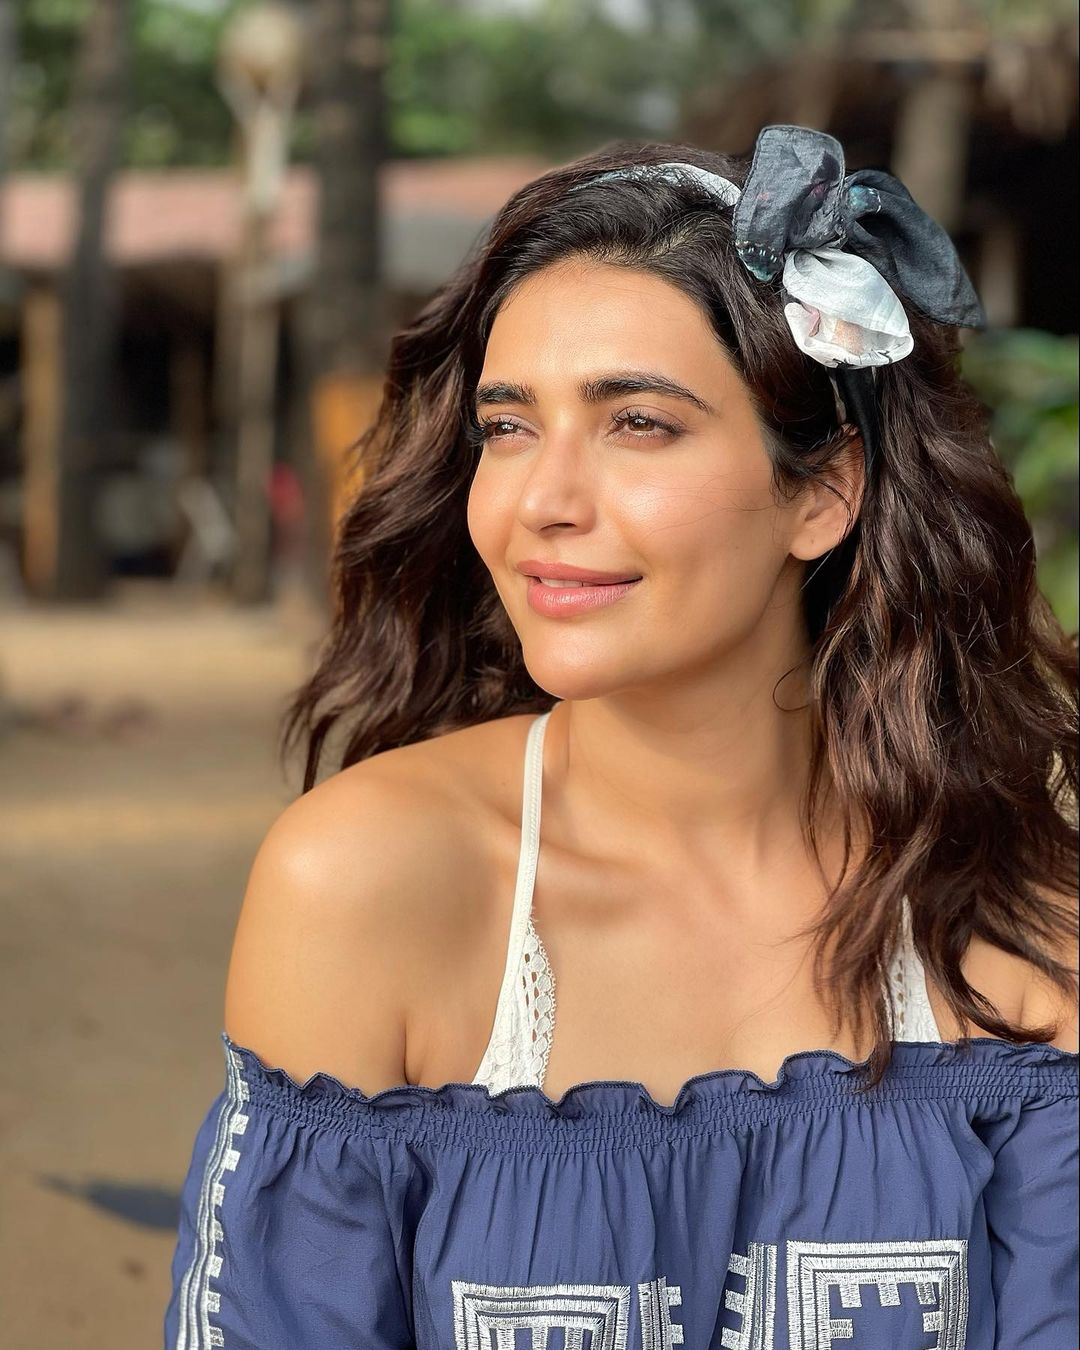 Actress karishma tanna pink top hot images-Telugu Actress Karishma Tanna, Actress Karishma Tanna Hot And Spicy Looks Images Are Winning The Internet, Actress Karishma Tanna Pink Top Hot Images, Images, Karishma Tanna, Karishma Tanna Glamorous Latest Images, Karishma Tanna Glamorous Latest Photos, Karishma Tanna Glamorous Latest Pics, Karishma Tanna Glamorous Latest Stills, Karishma Tanna Glamorous Latest Telugu Movie, Karishma Tanna Glamorous New Images, Karishma Tanna Glamorous New Photos, Karishma Tanna Glamorous New Pics Photos,Spicy Hot Pics,Images,High Resolution WallPapers Download